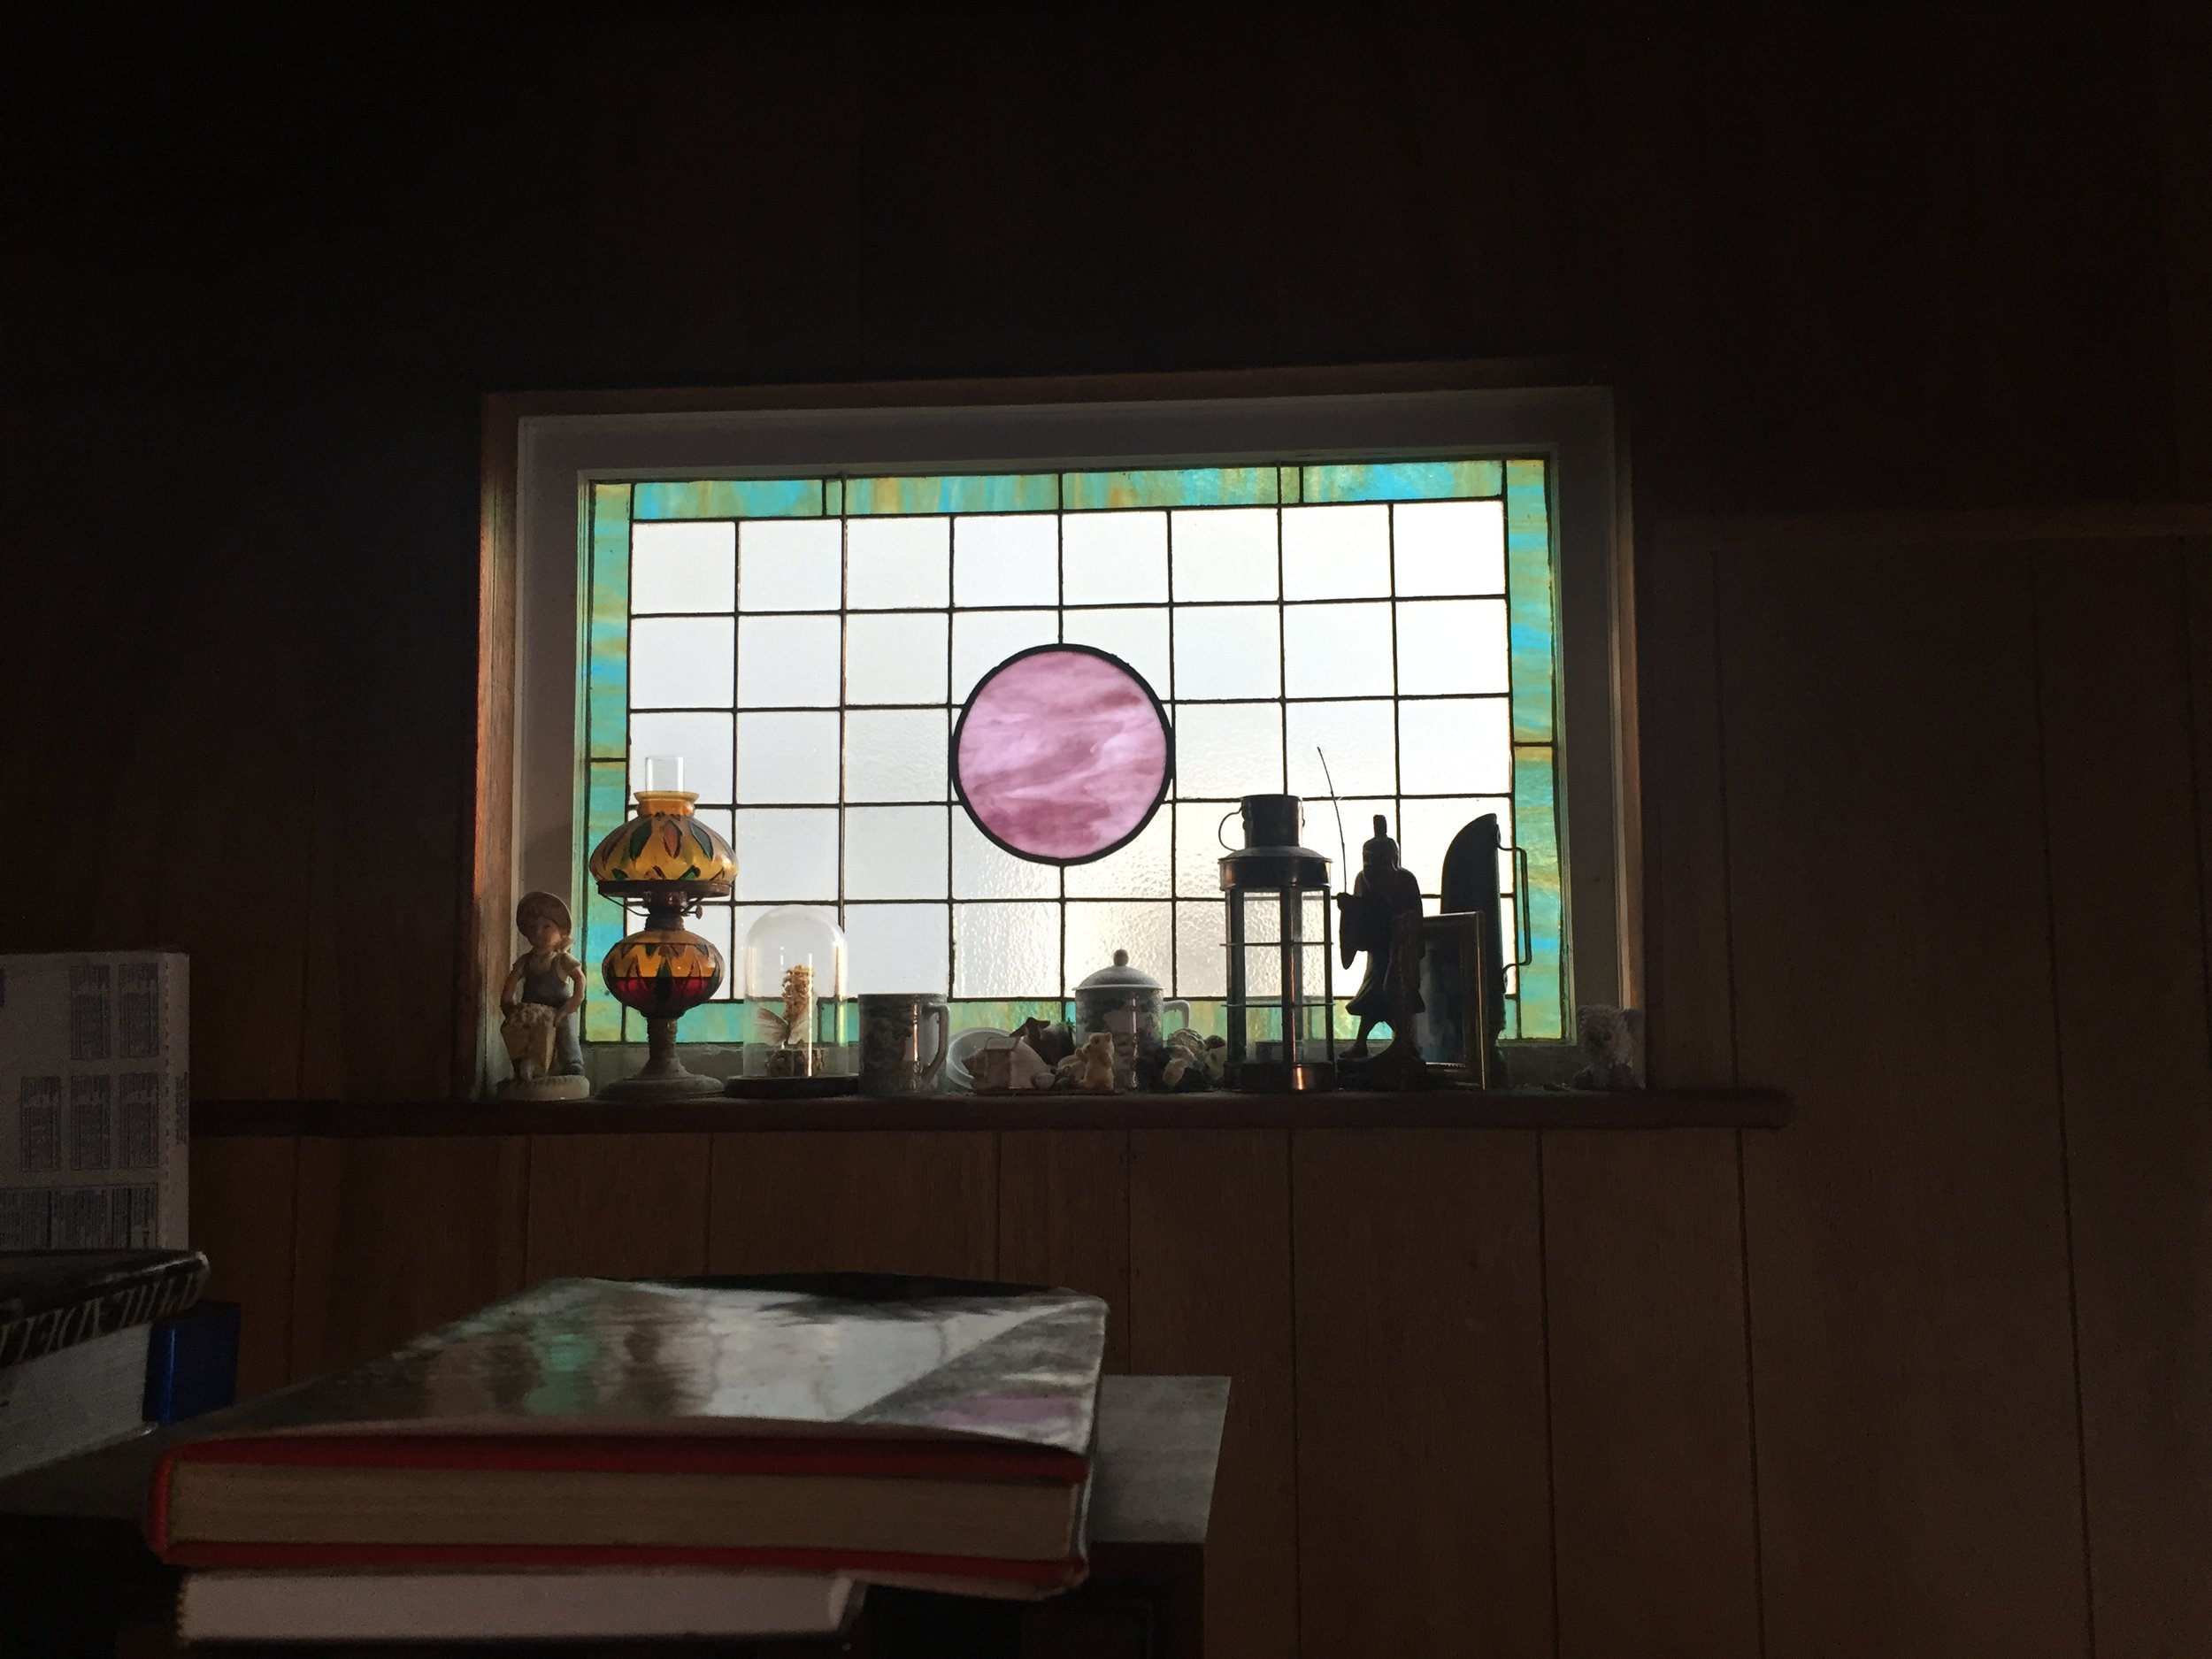 Sadly I did not win the offer to acquire this house with original stained glass.